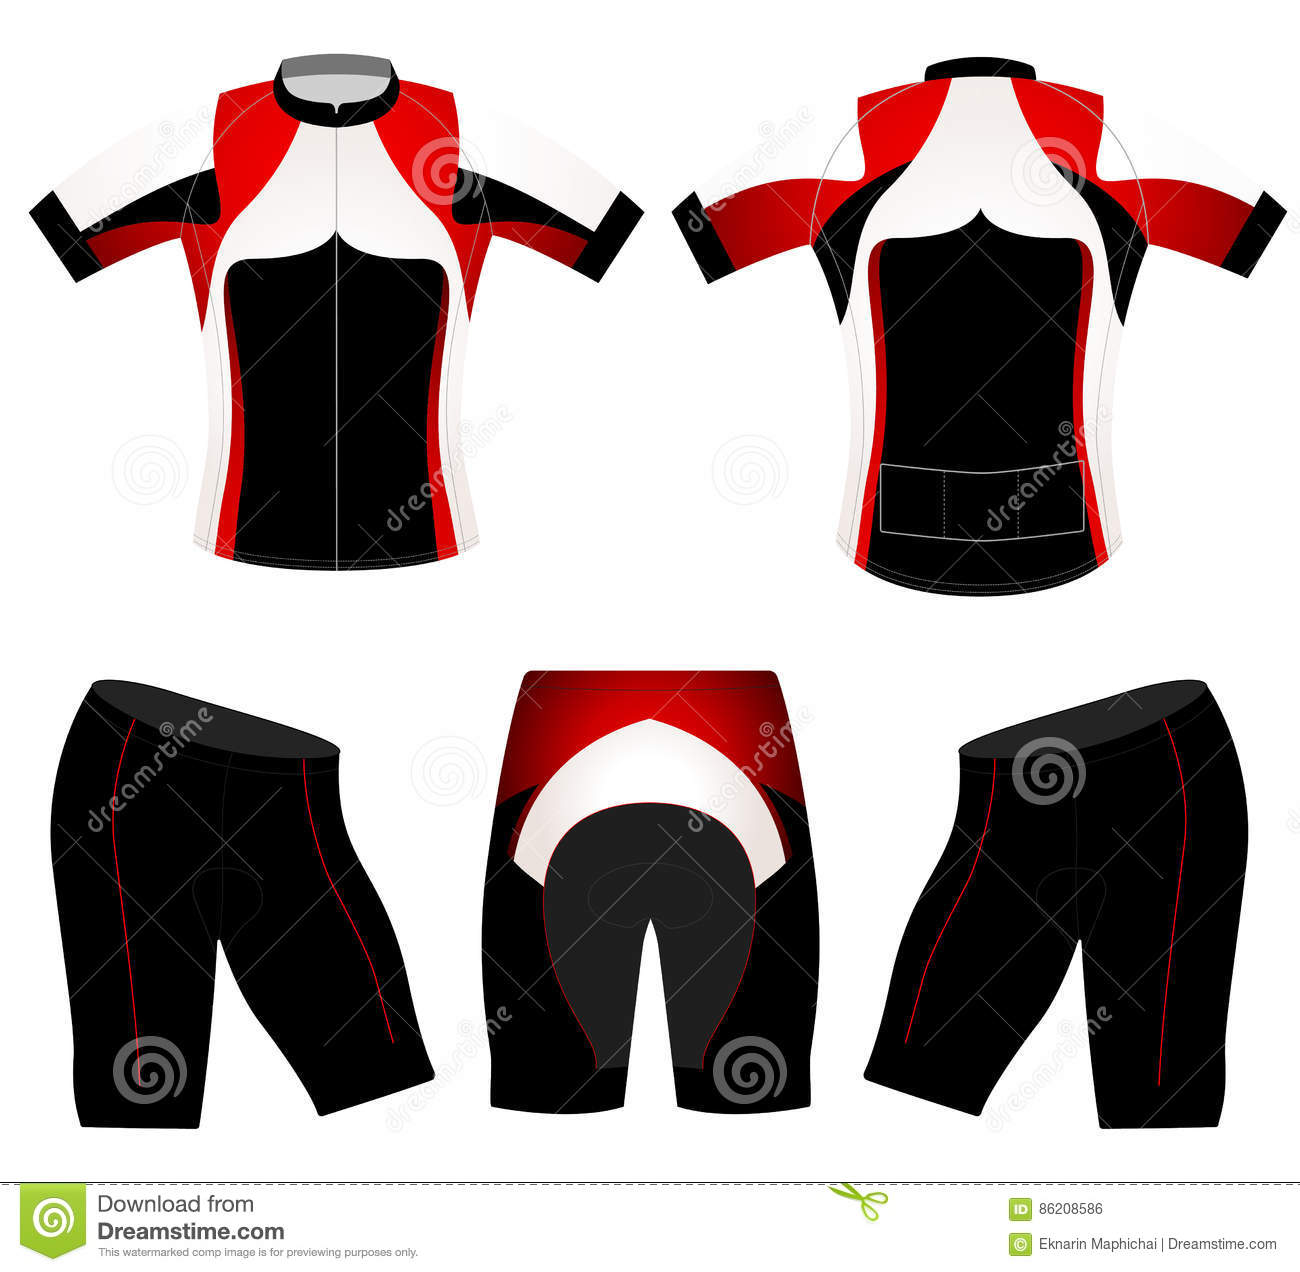 da267eb88f62 T-shirt sports black and red style vector cycling vest design on a white  background. More similar stock illustrations